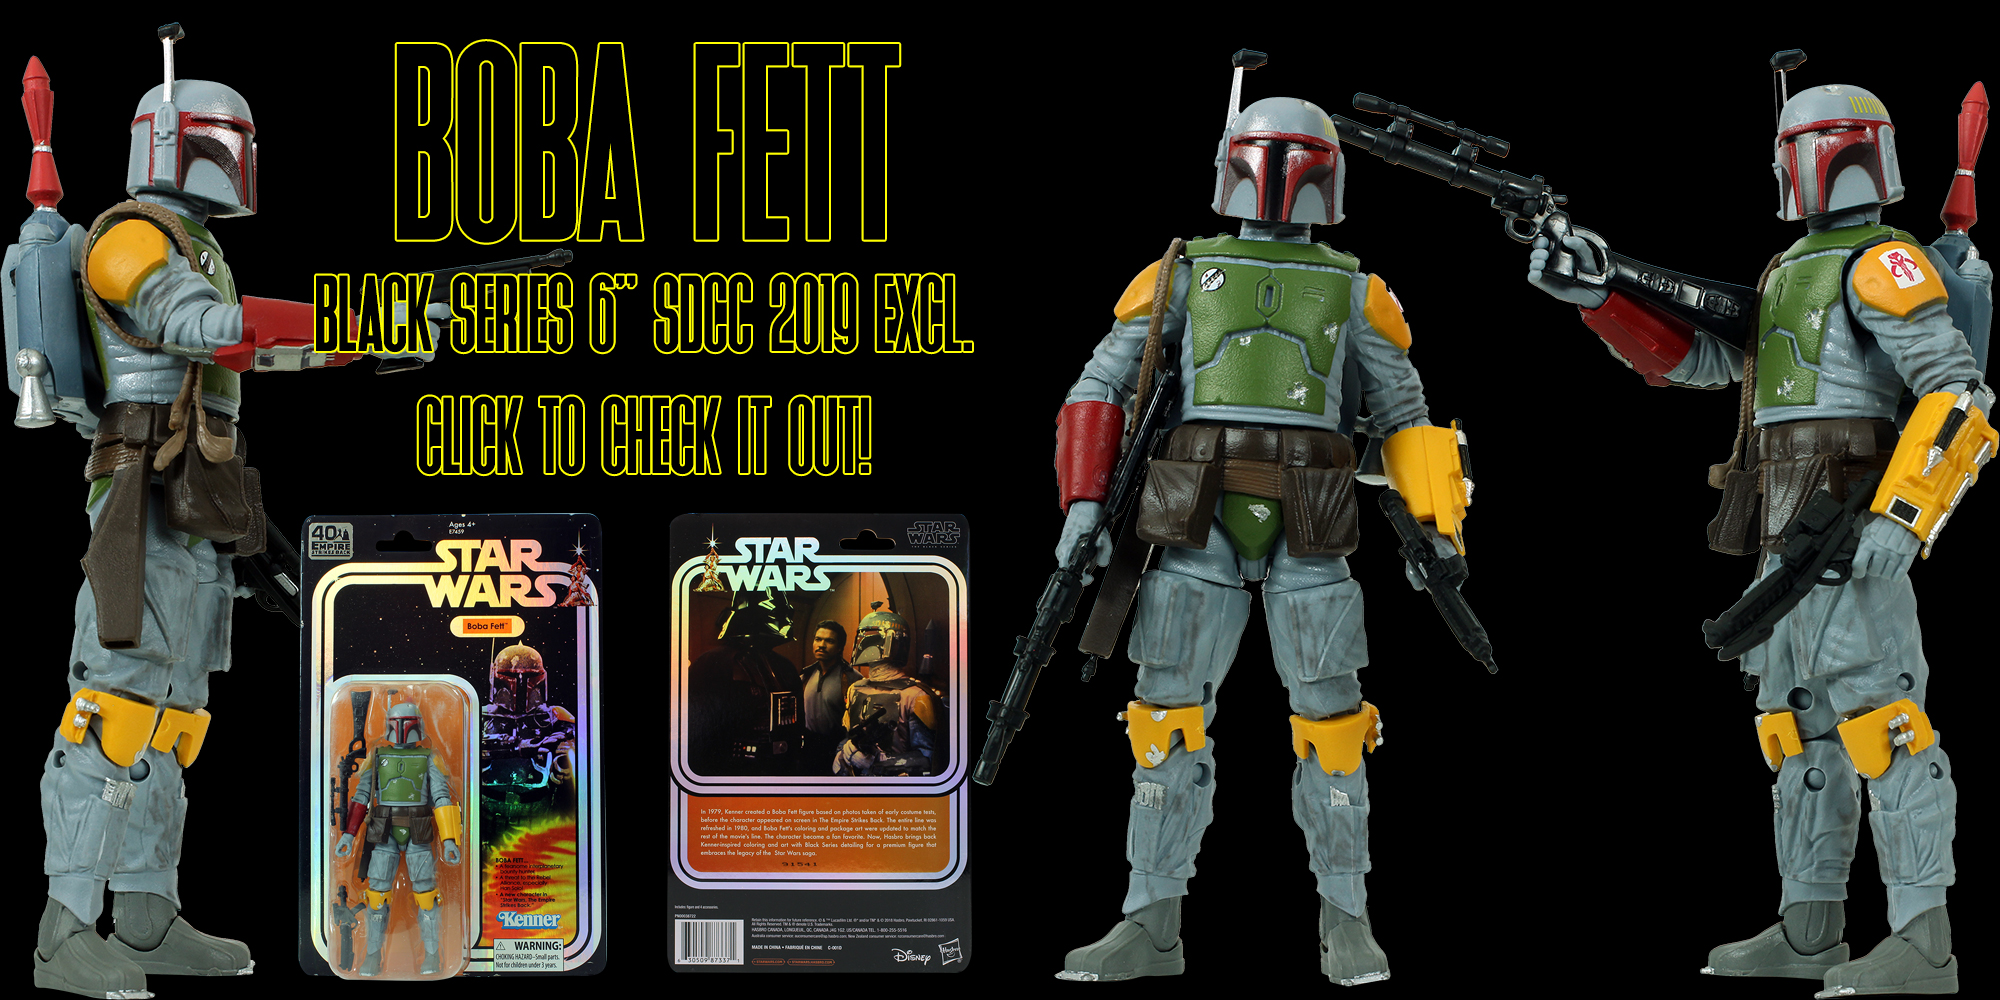 Black Series Boba Fett